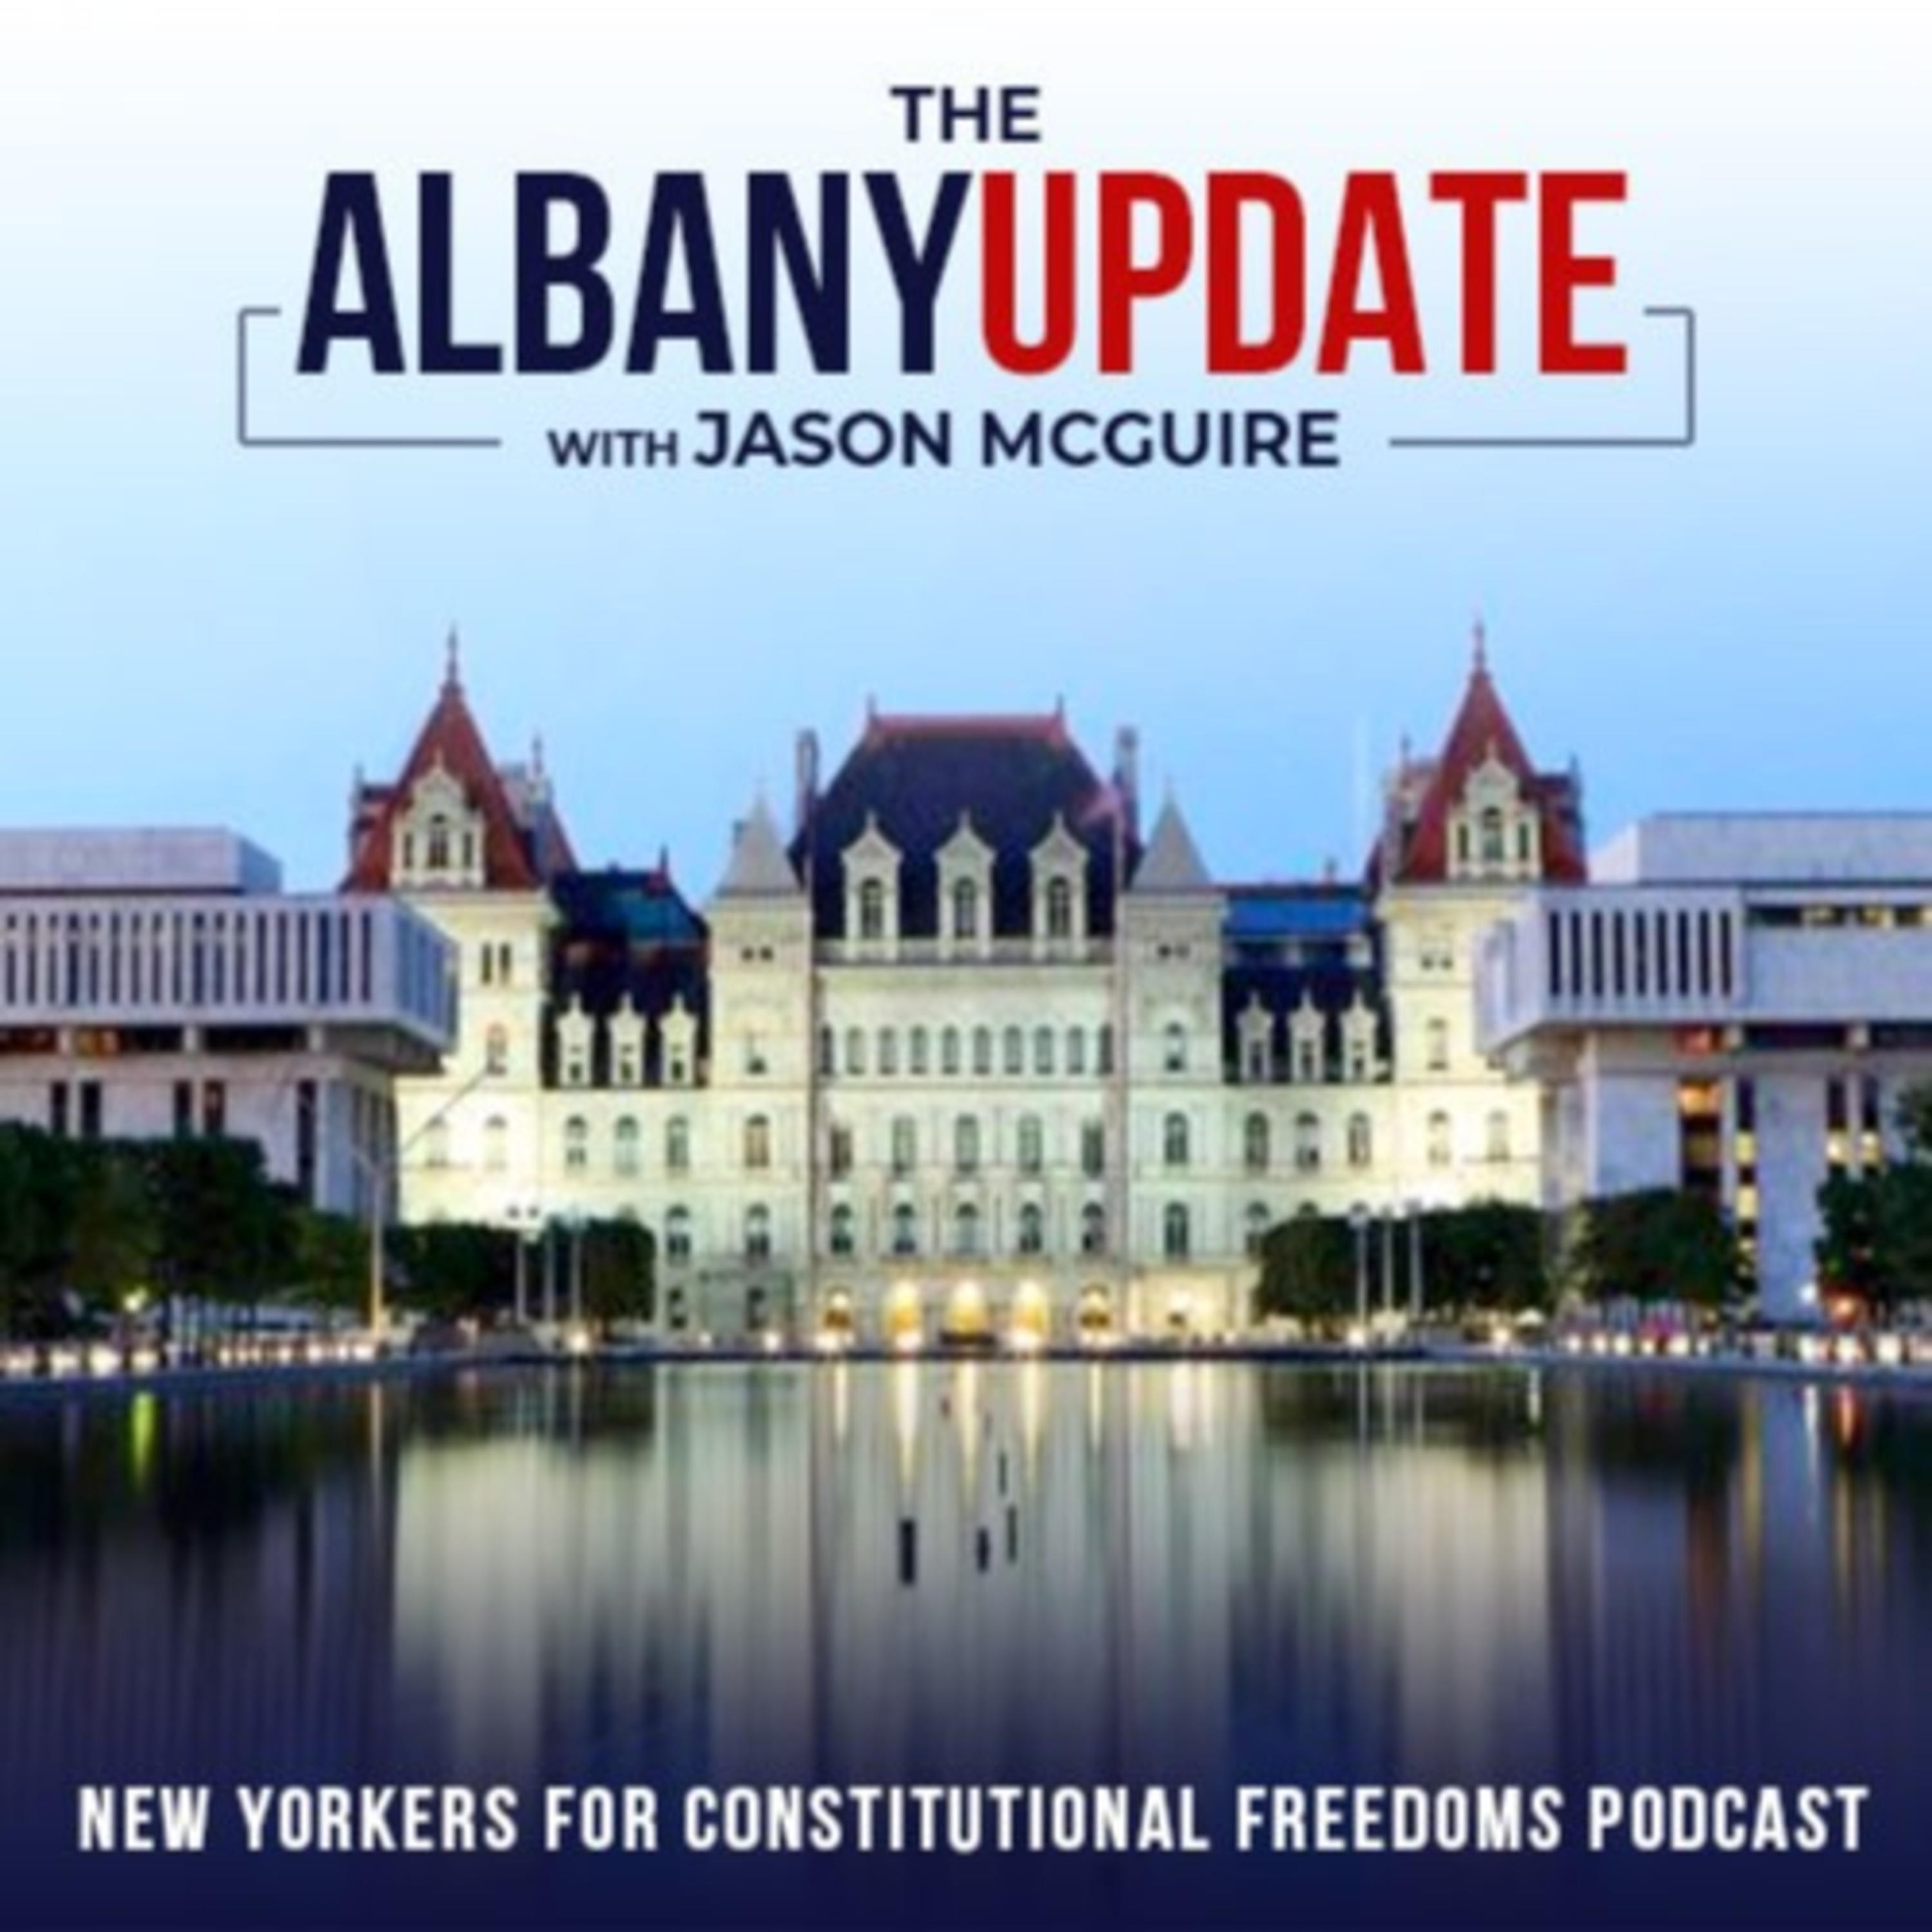 The Albany Update with Jason McGuire